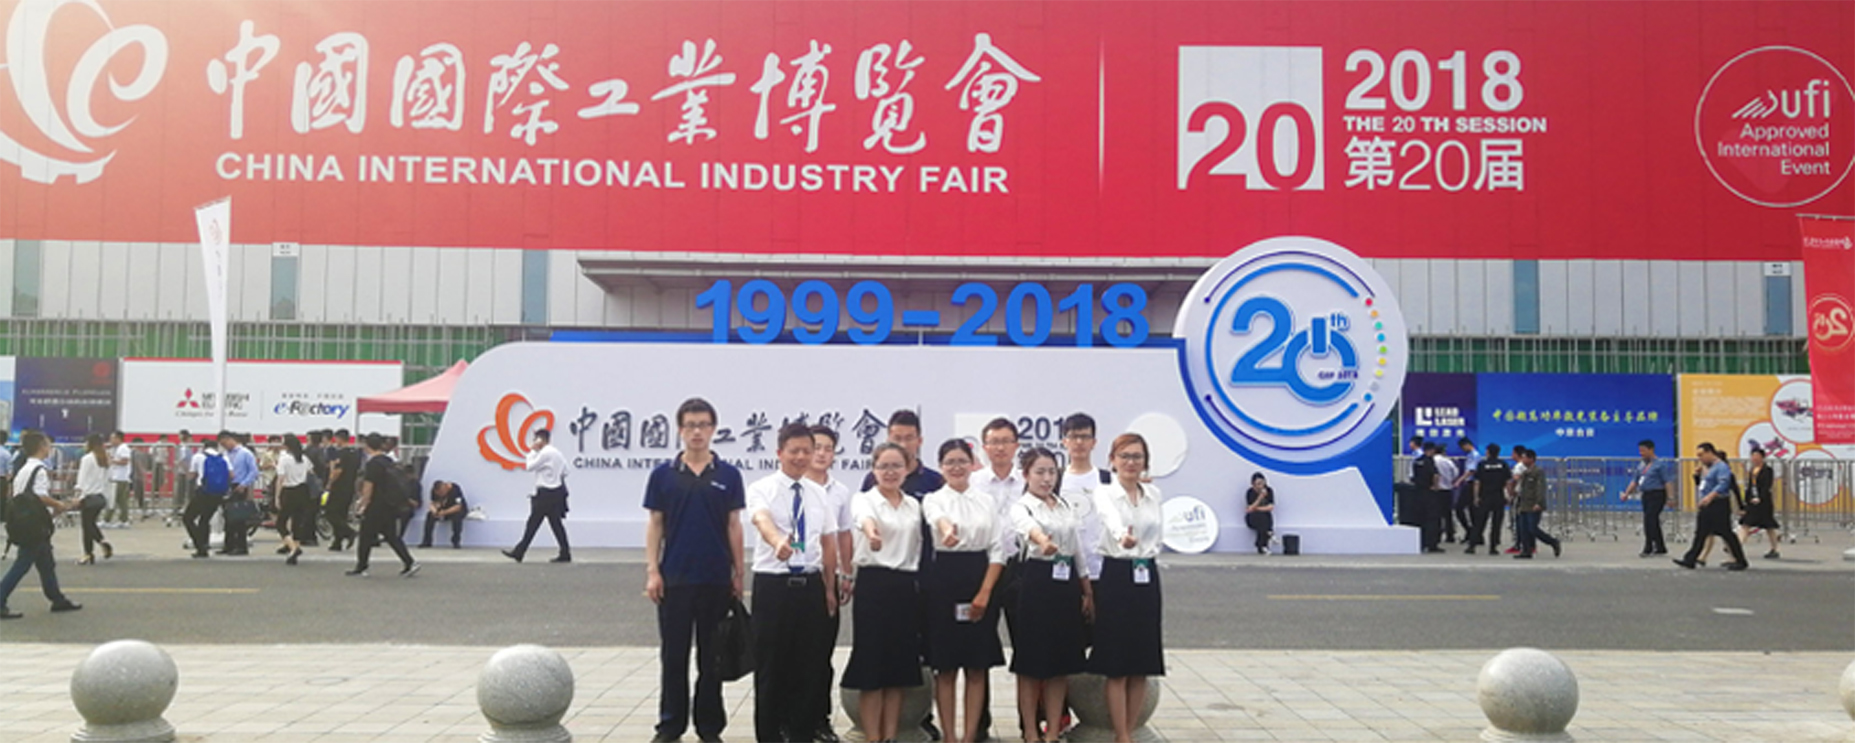 2018 Shanghai Industry Fair site